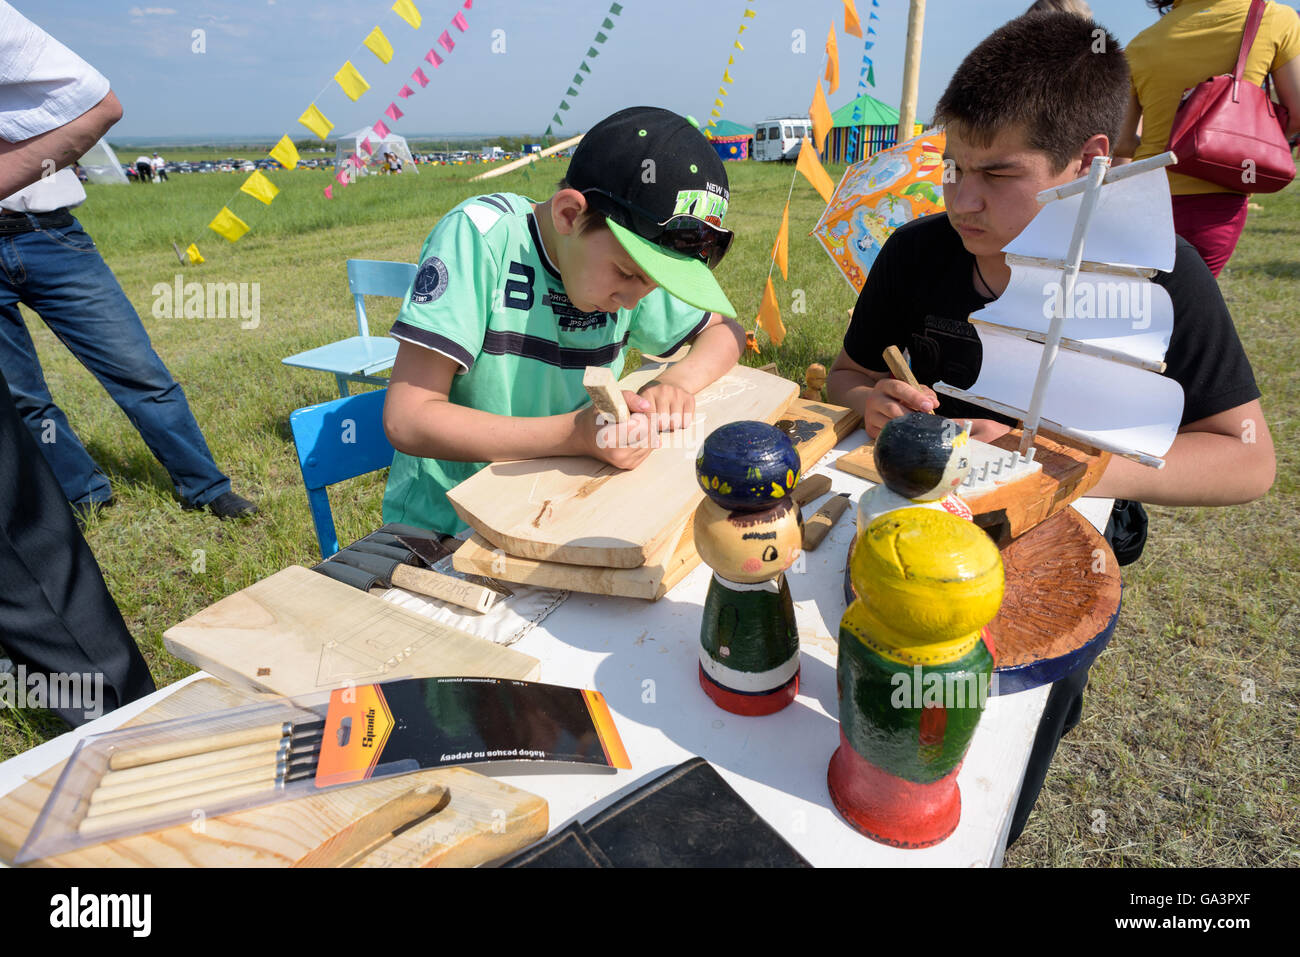 Two children crafting woodwork by hard carving - Stock Image